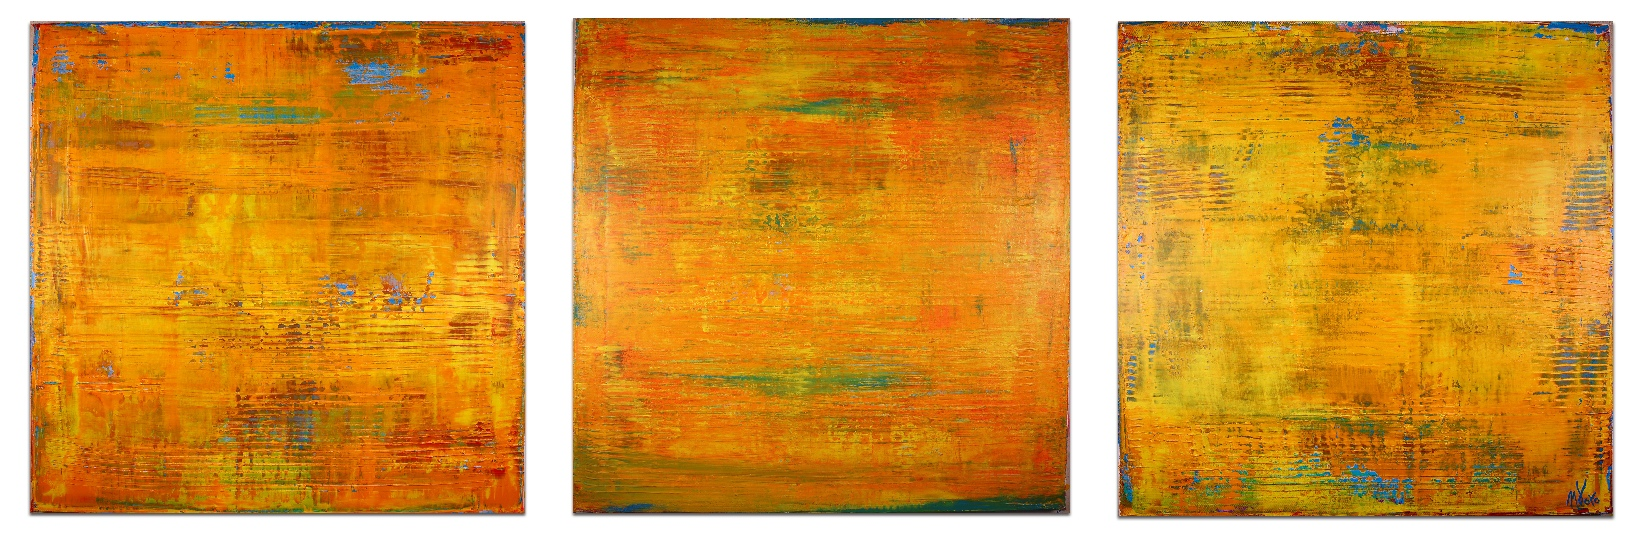 Fire Storm by Nestor Toro 2017 Los Angeles -Sold abstract art